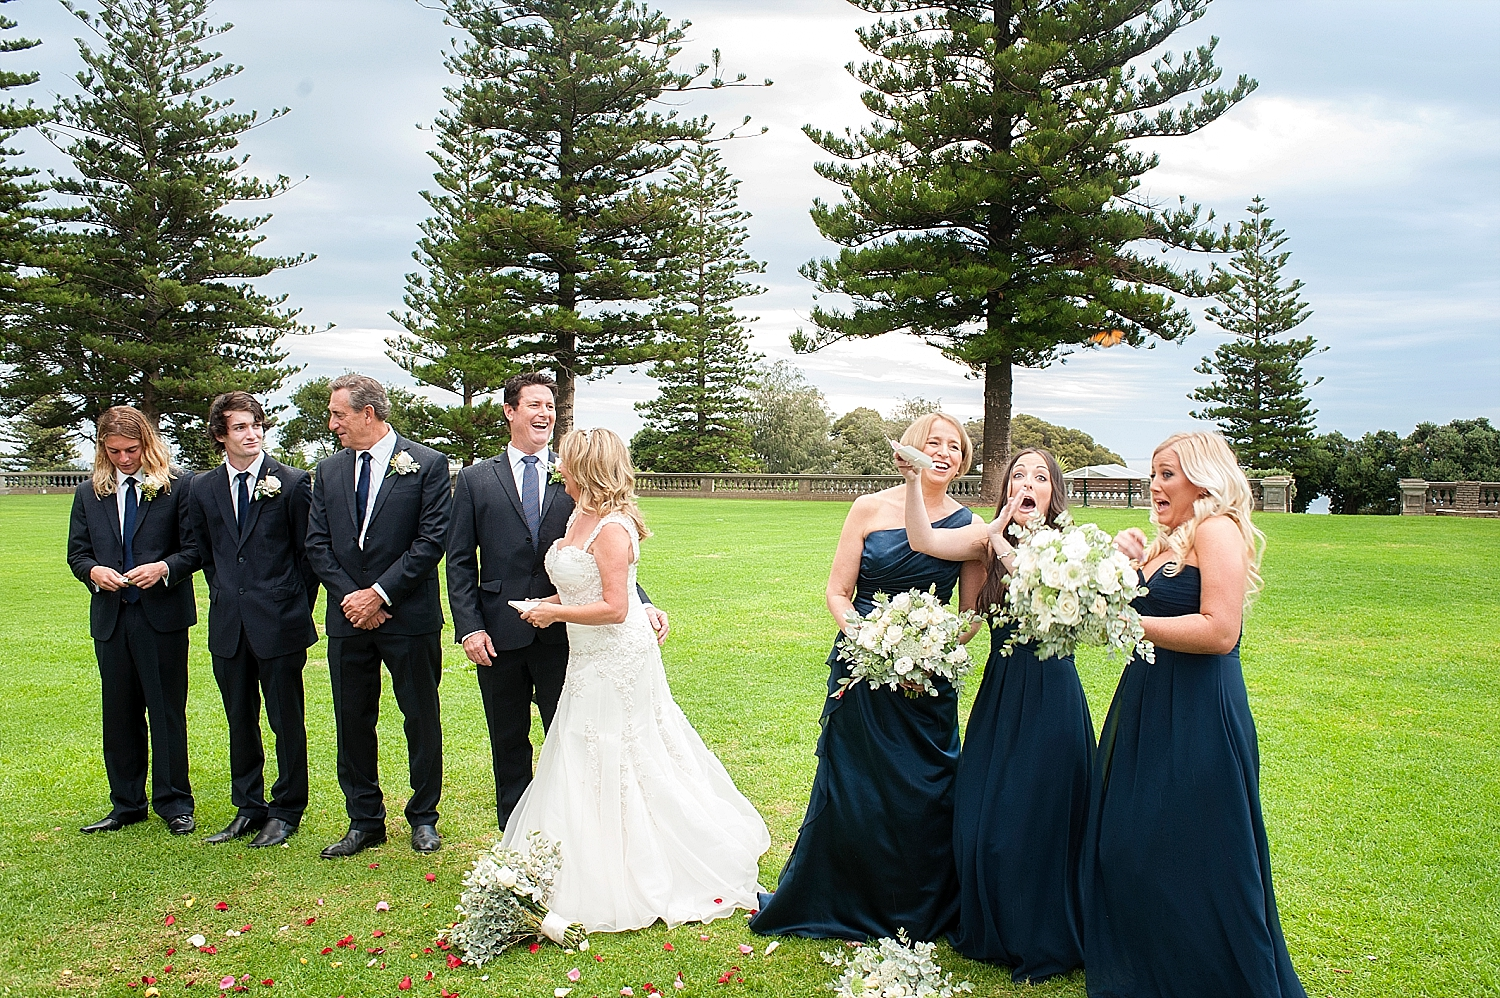 29butterfly release cottesloe civic centre wedding perth 38.jpg